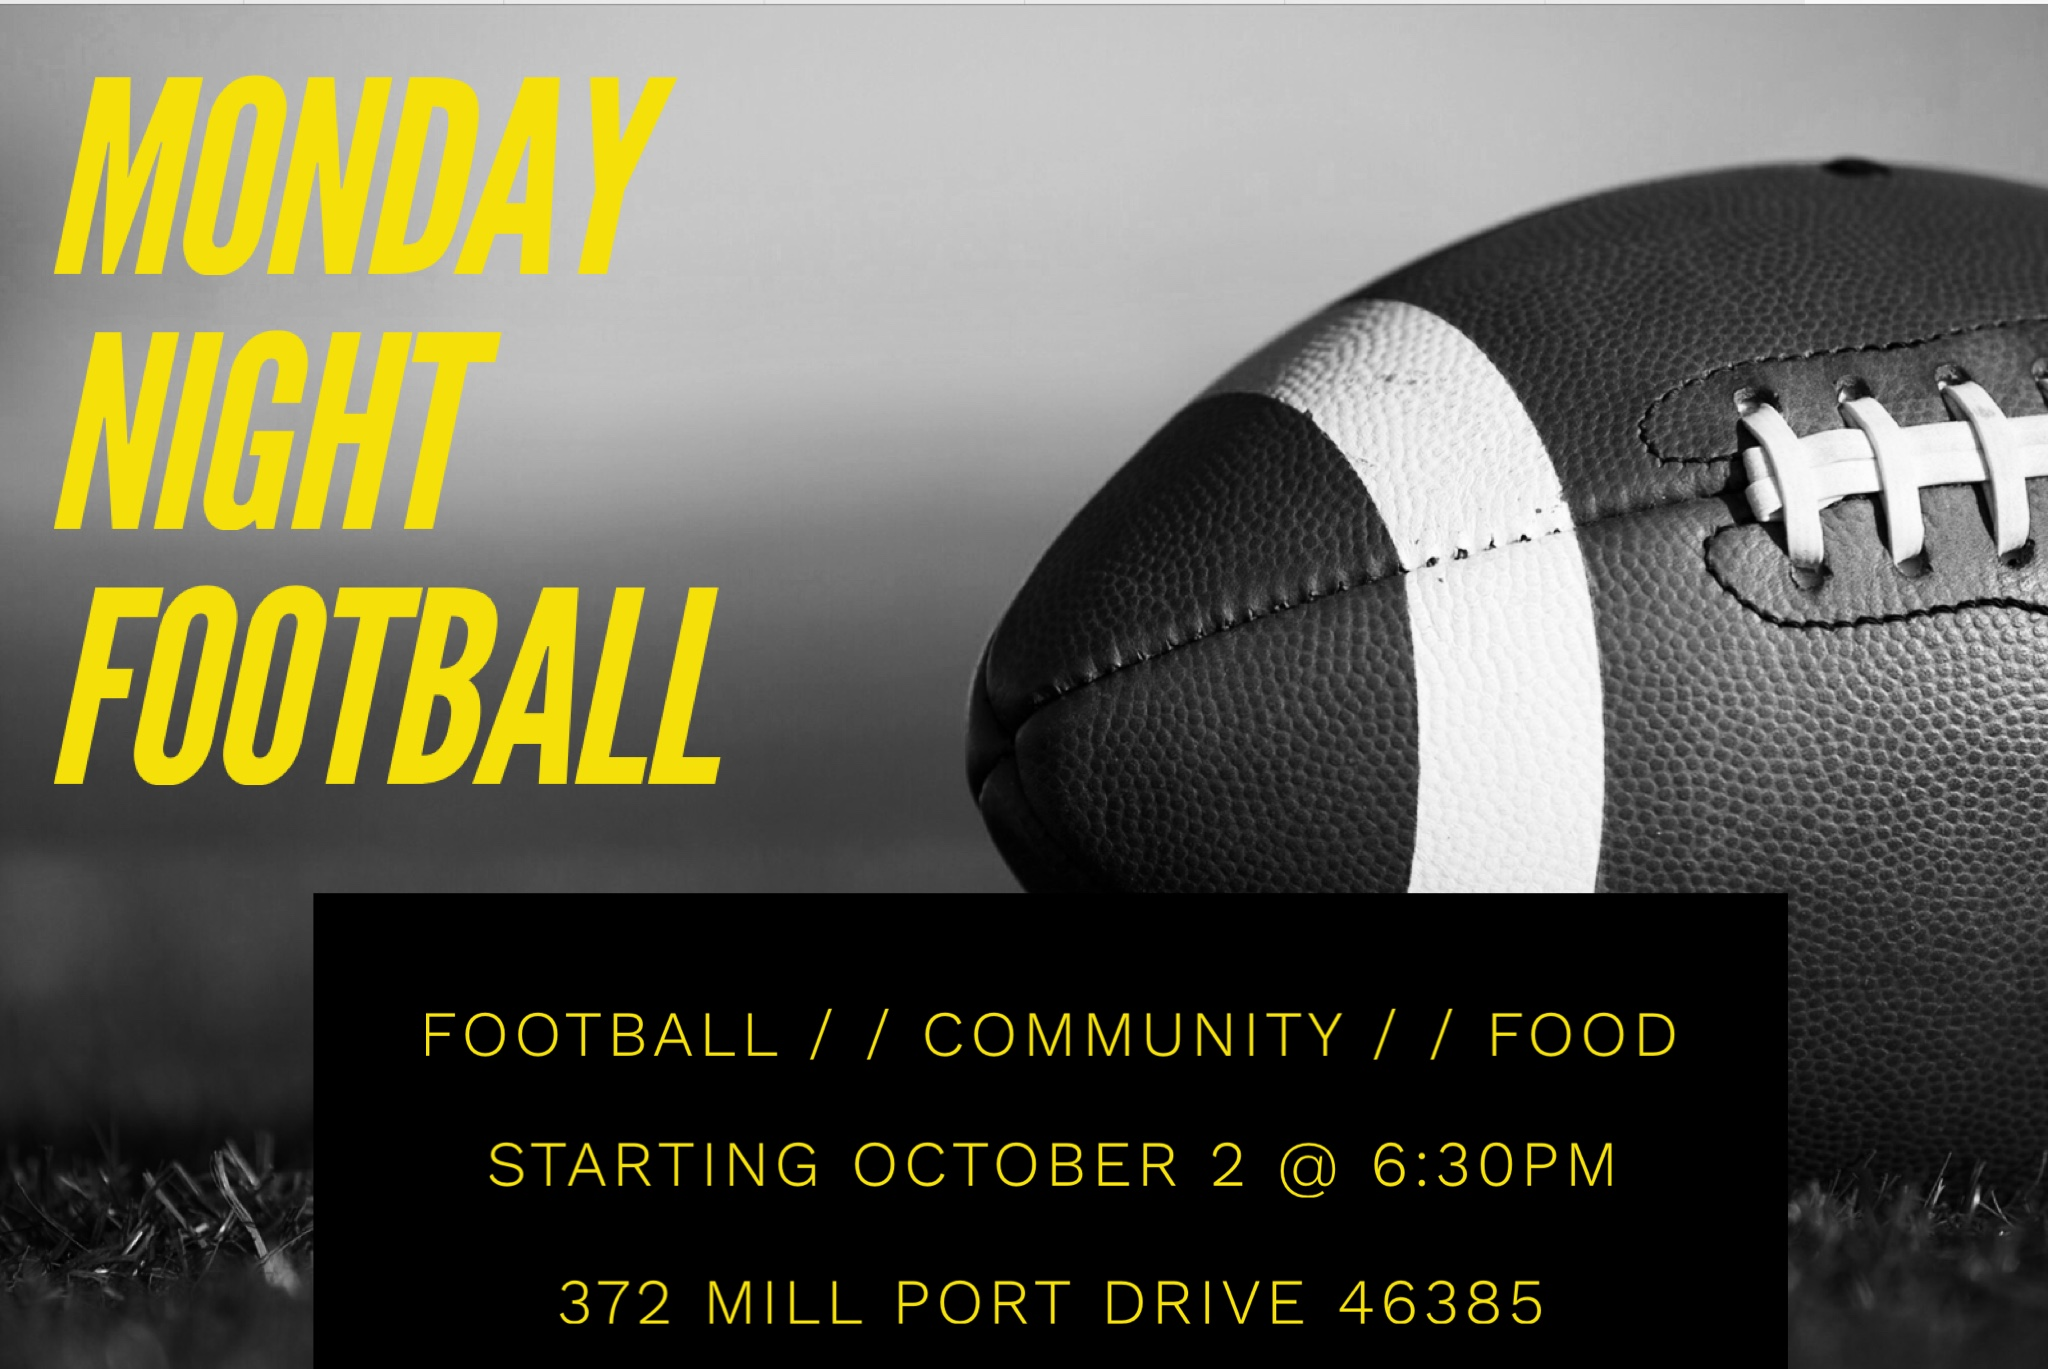 Fall Men's Bible Study - 6:30 p.m. - halftime, runs for 5 weeks